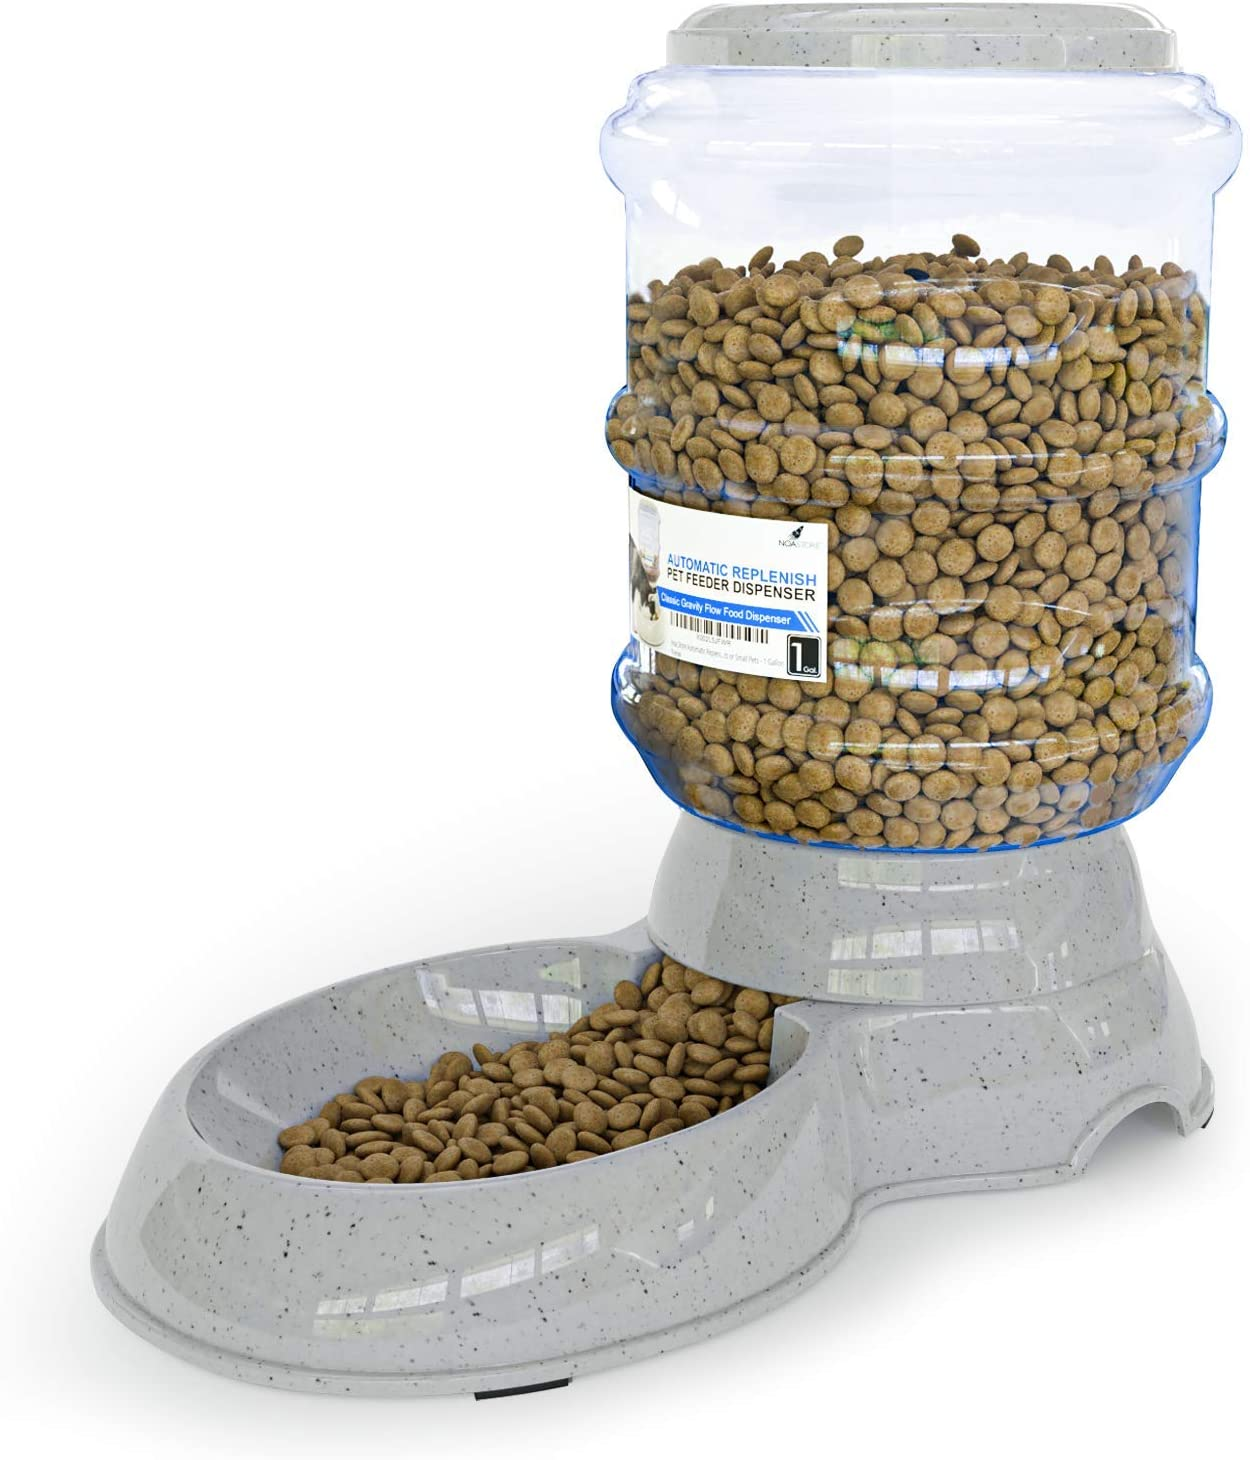 Noa Store Automatic Replenish Pet Waterer Dispenser Station for Dogs, Cats or Small Pets